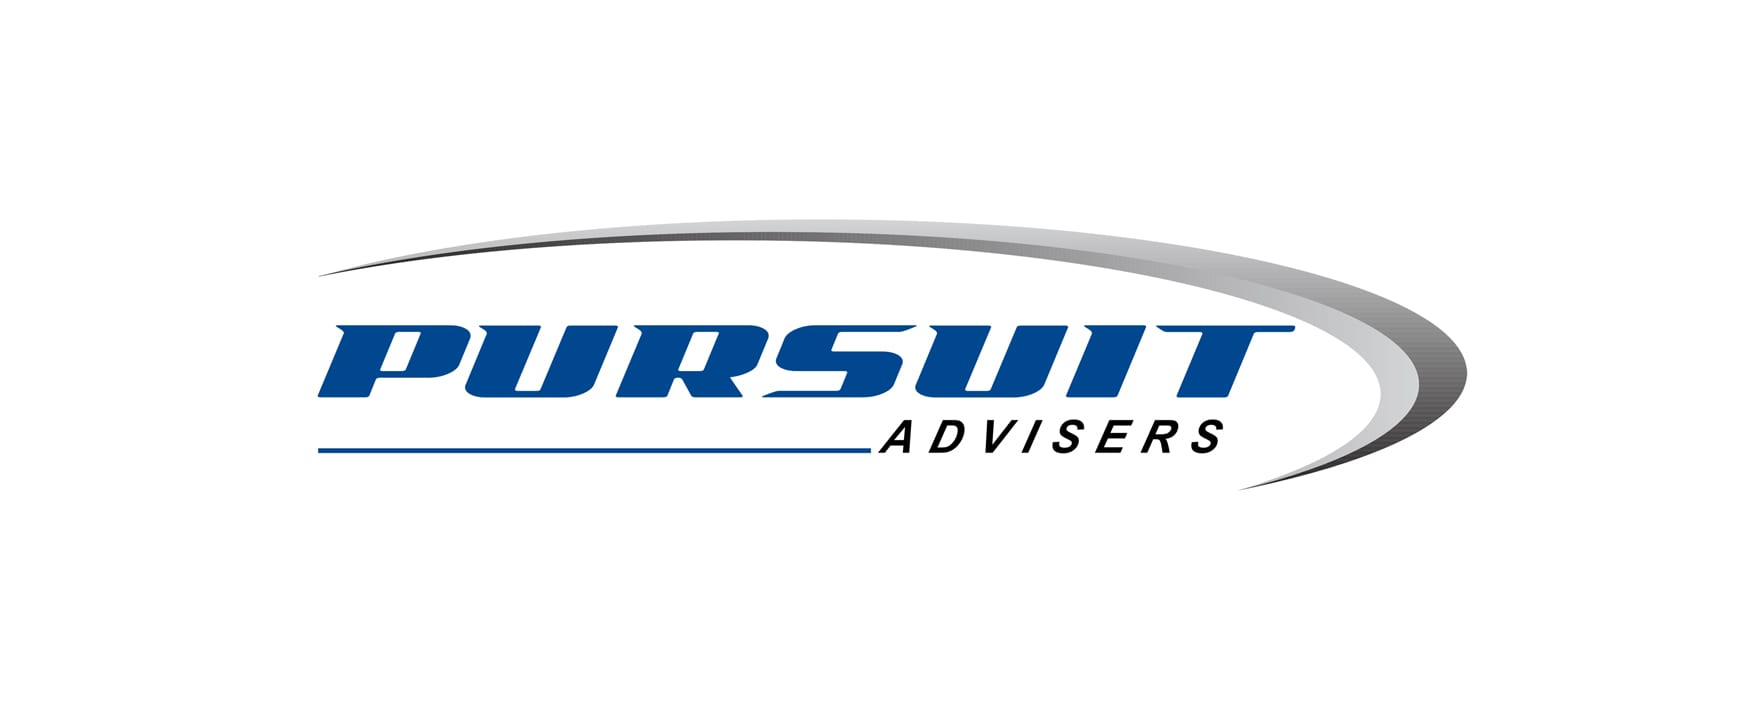 pursuit-advisers-logo-with-White